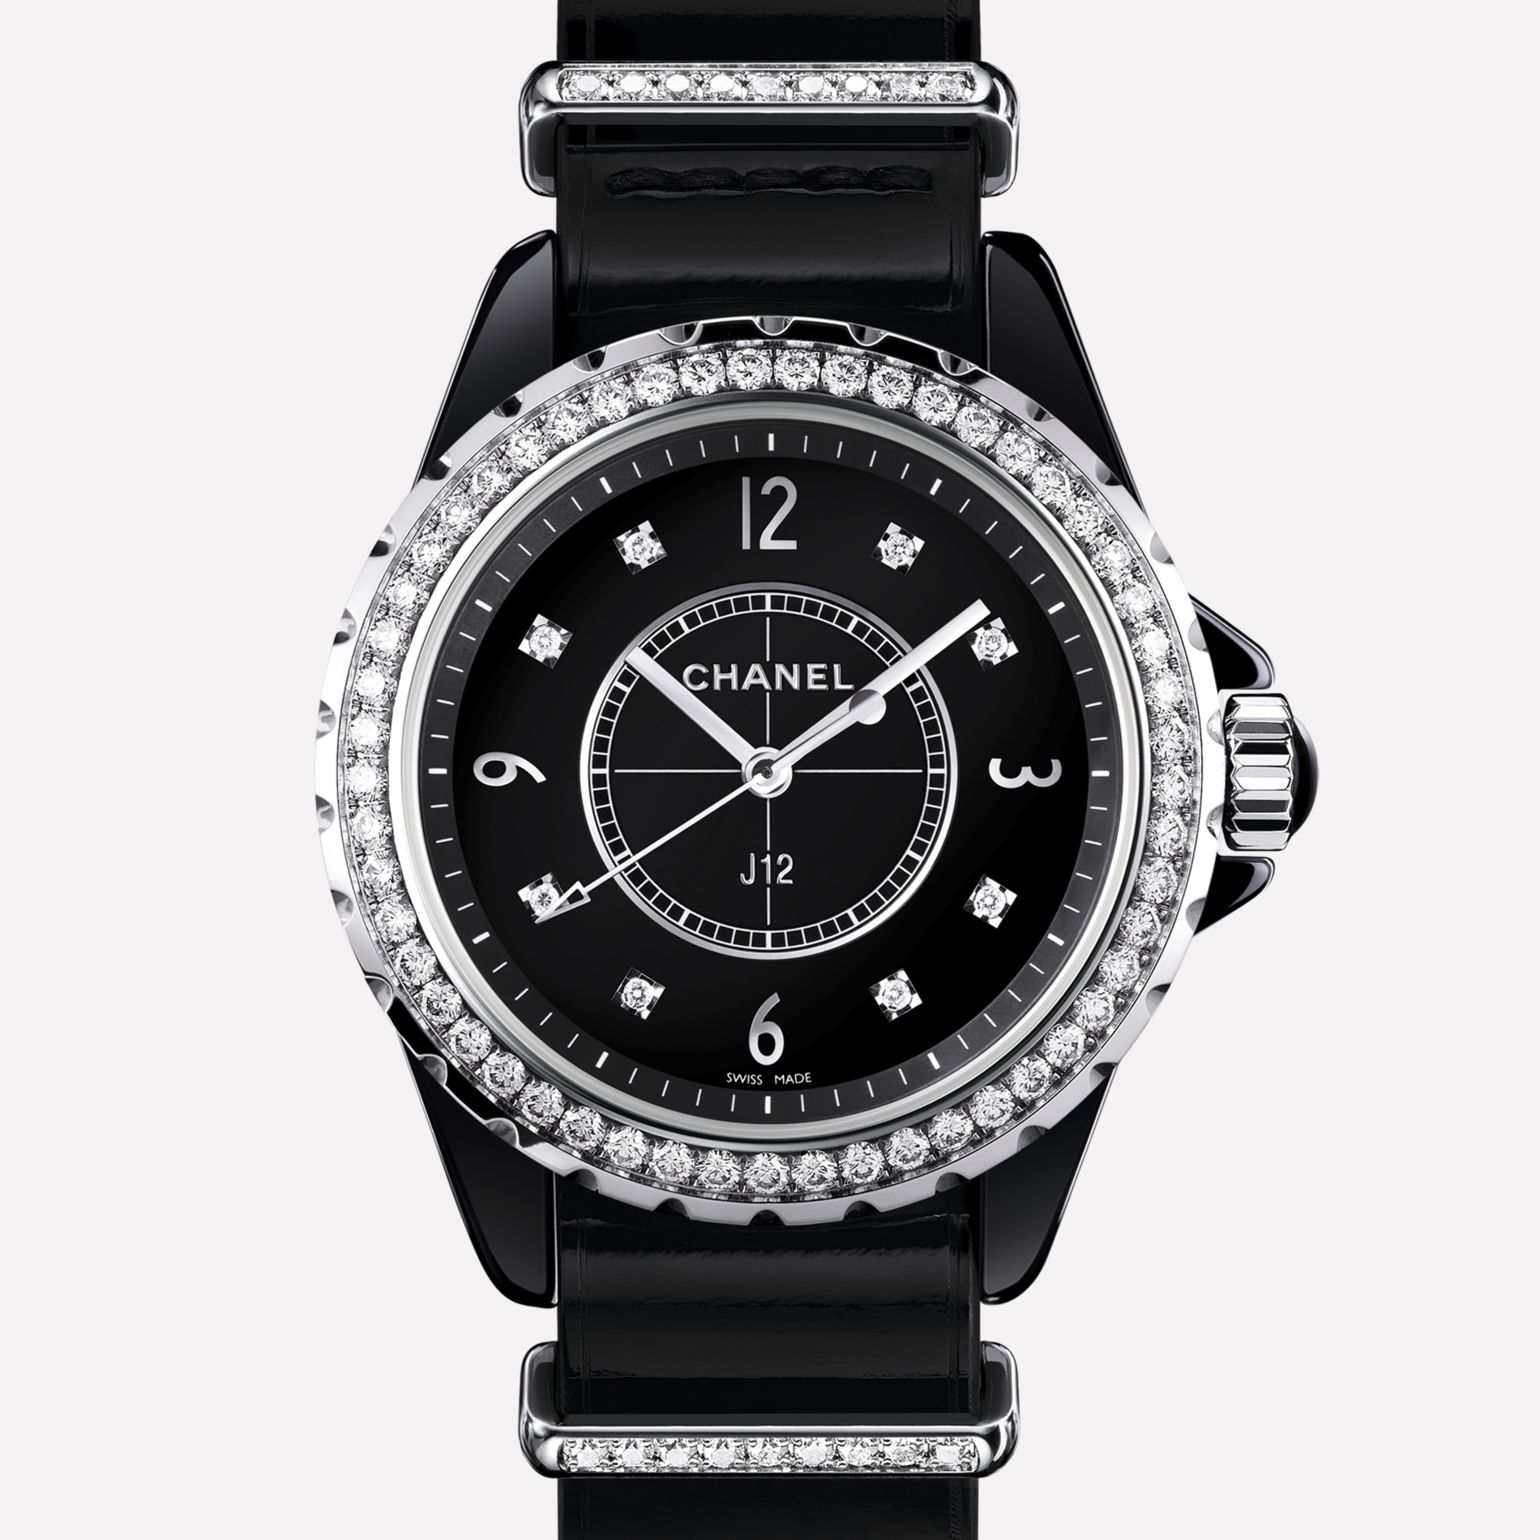 J12-G10 Watch Black ceramic and steel, bezel, indicators, and loops set with diamonds, alligator strap